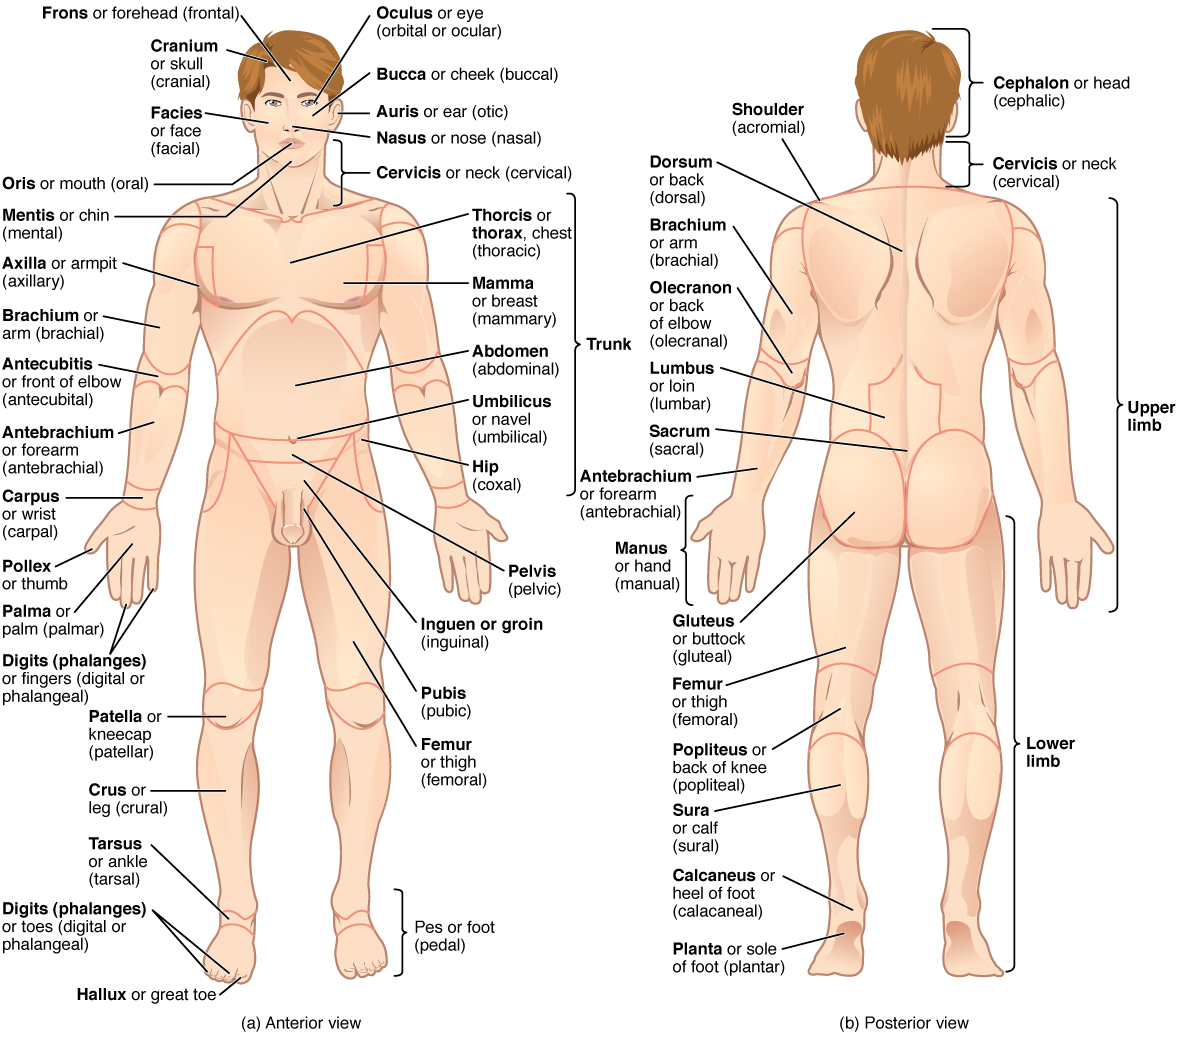 Regions of the human body. Image description available.